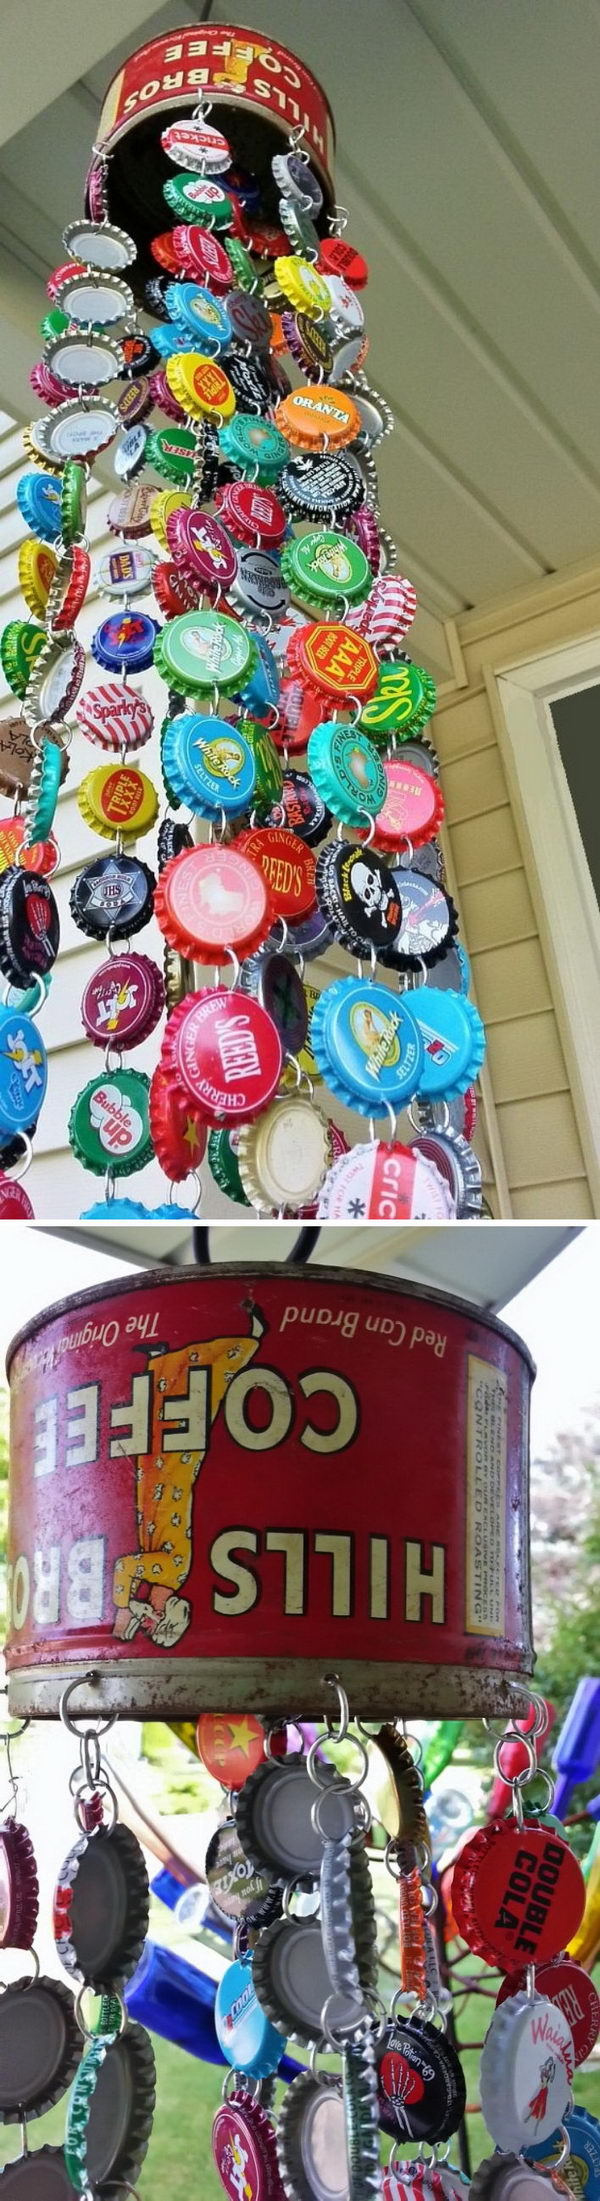 DIY Bottle Cap Wind Chime.